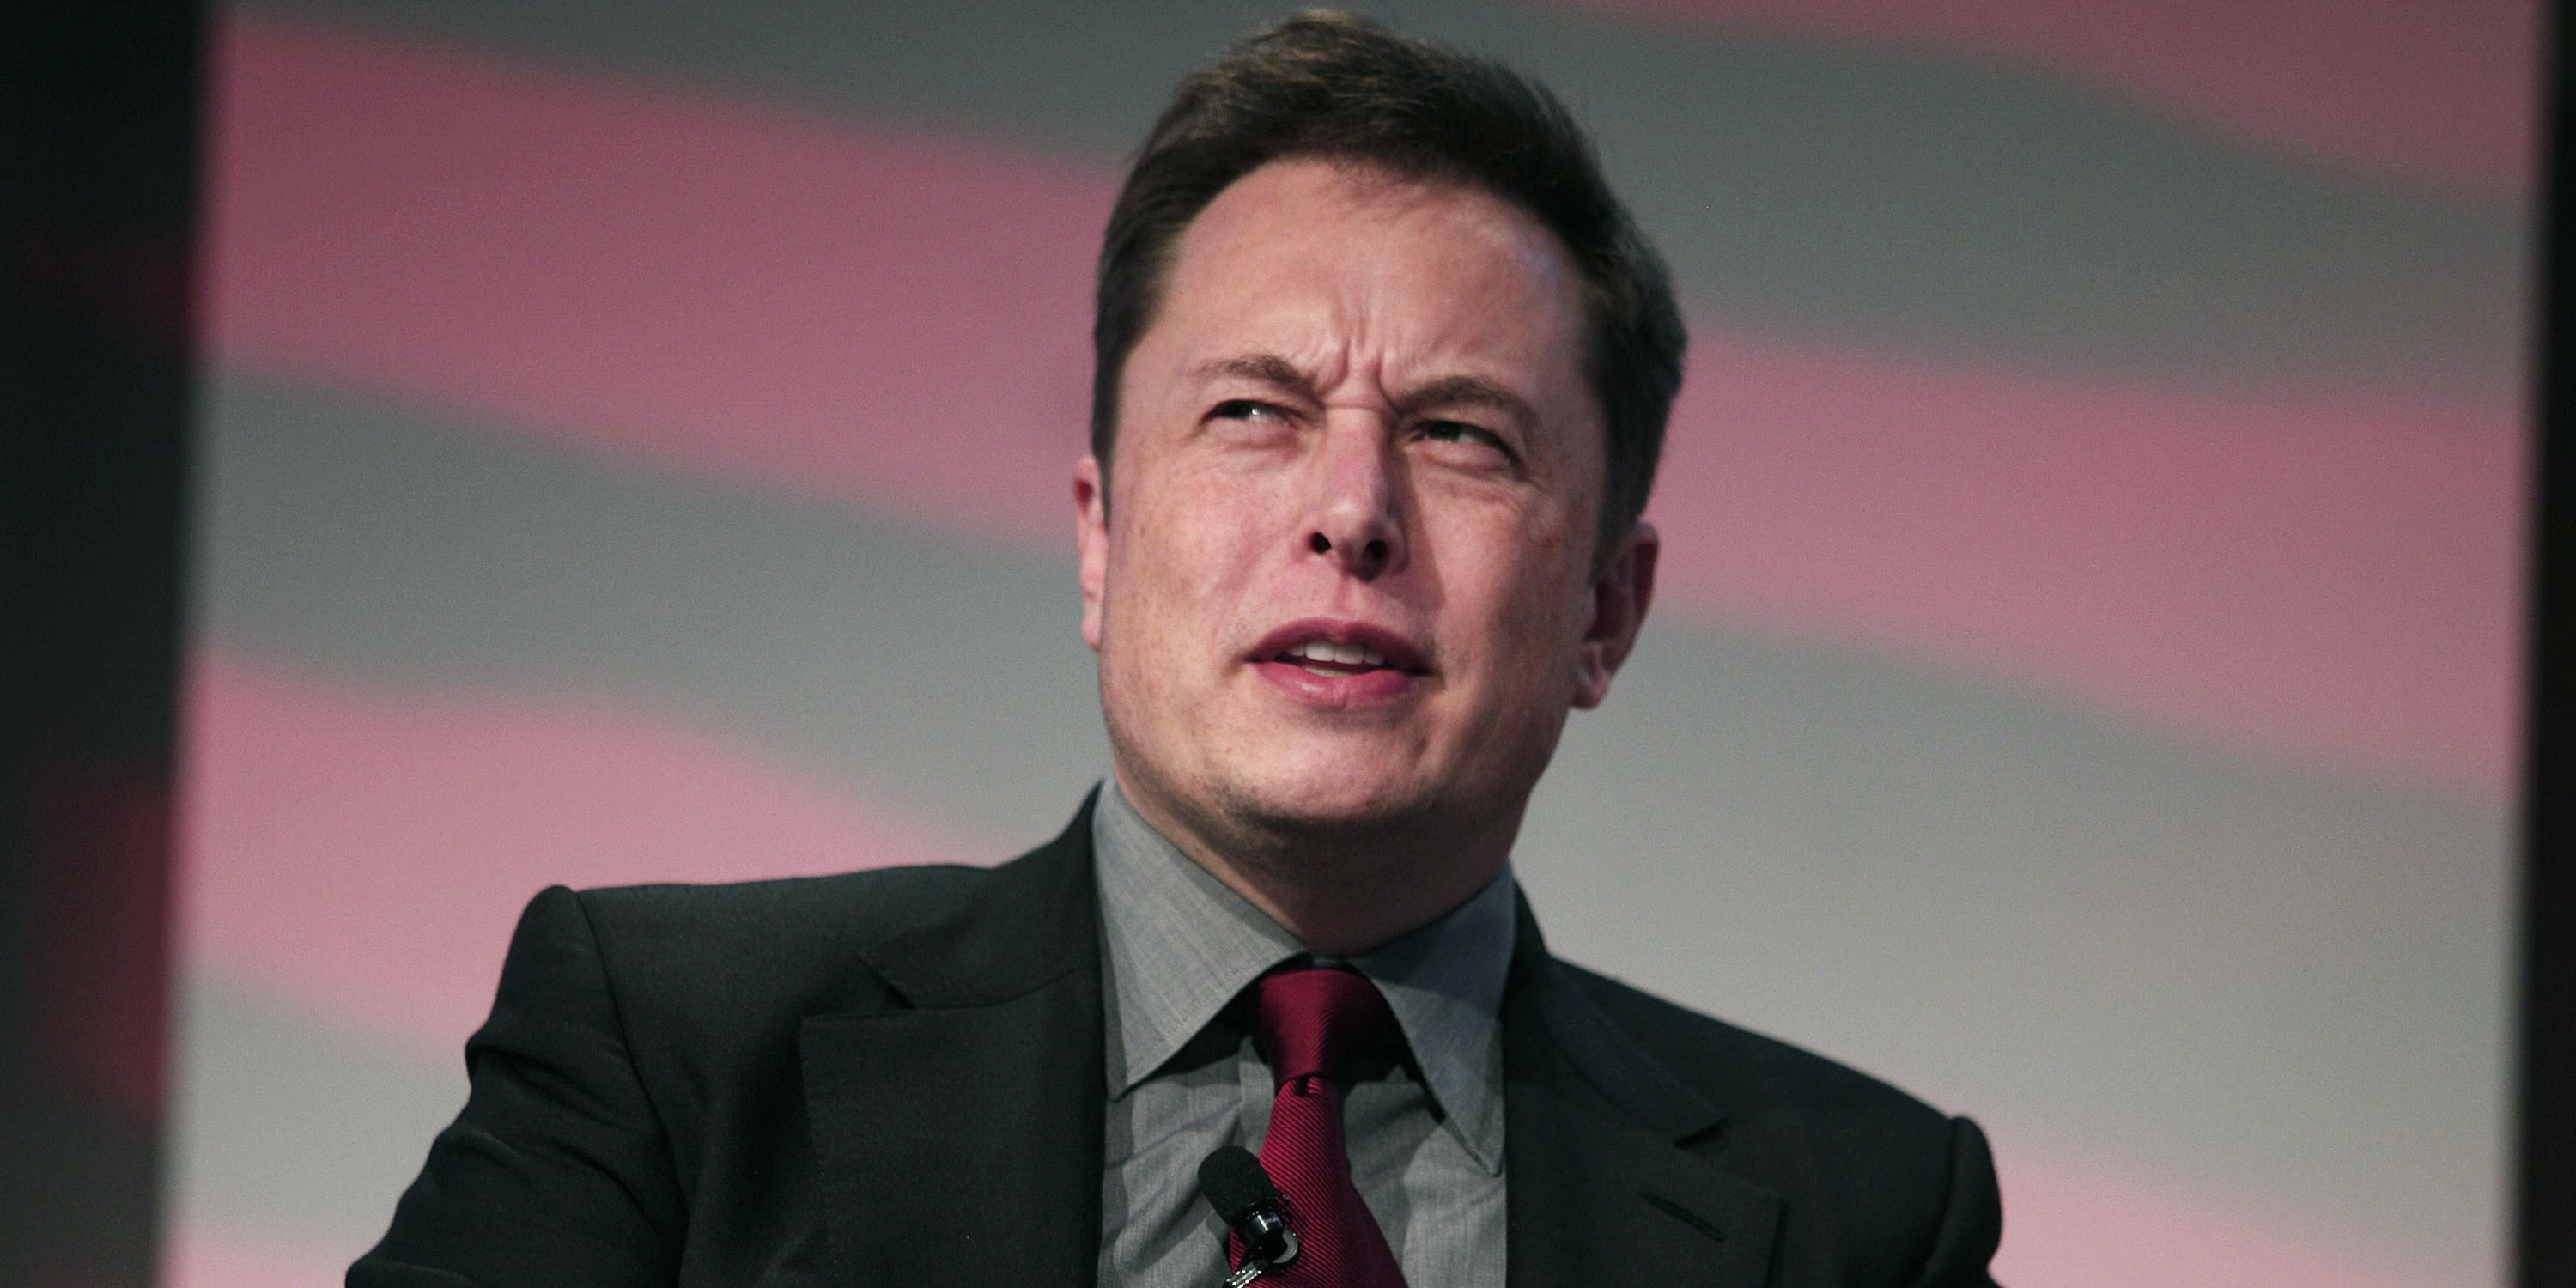 """Elon Musk Says He """"Borrowed Money"""" From SpaceX to Help Fund SolarCity and Tesla"""